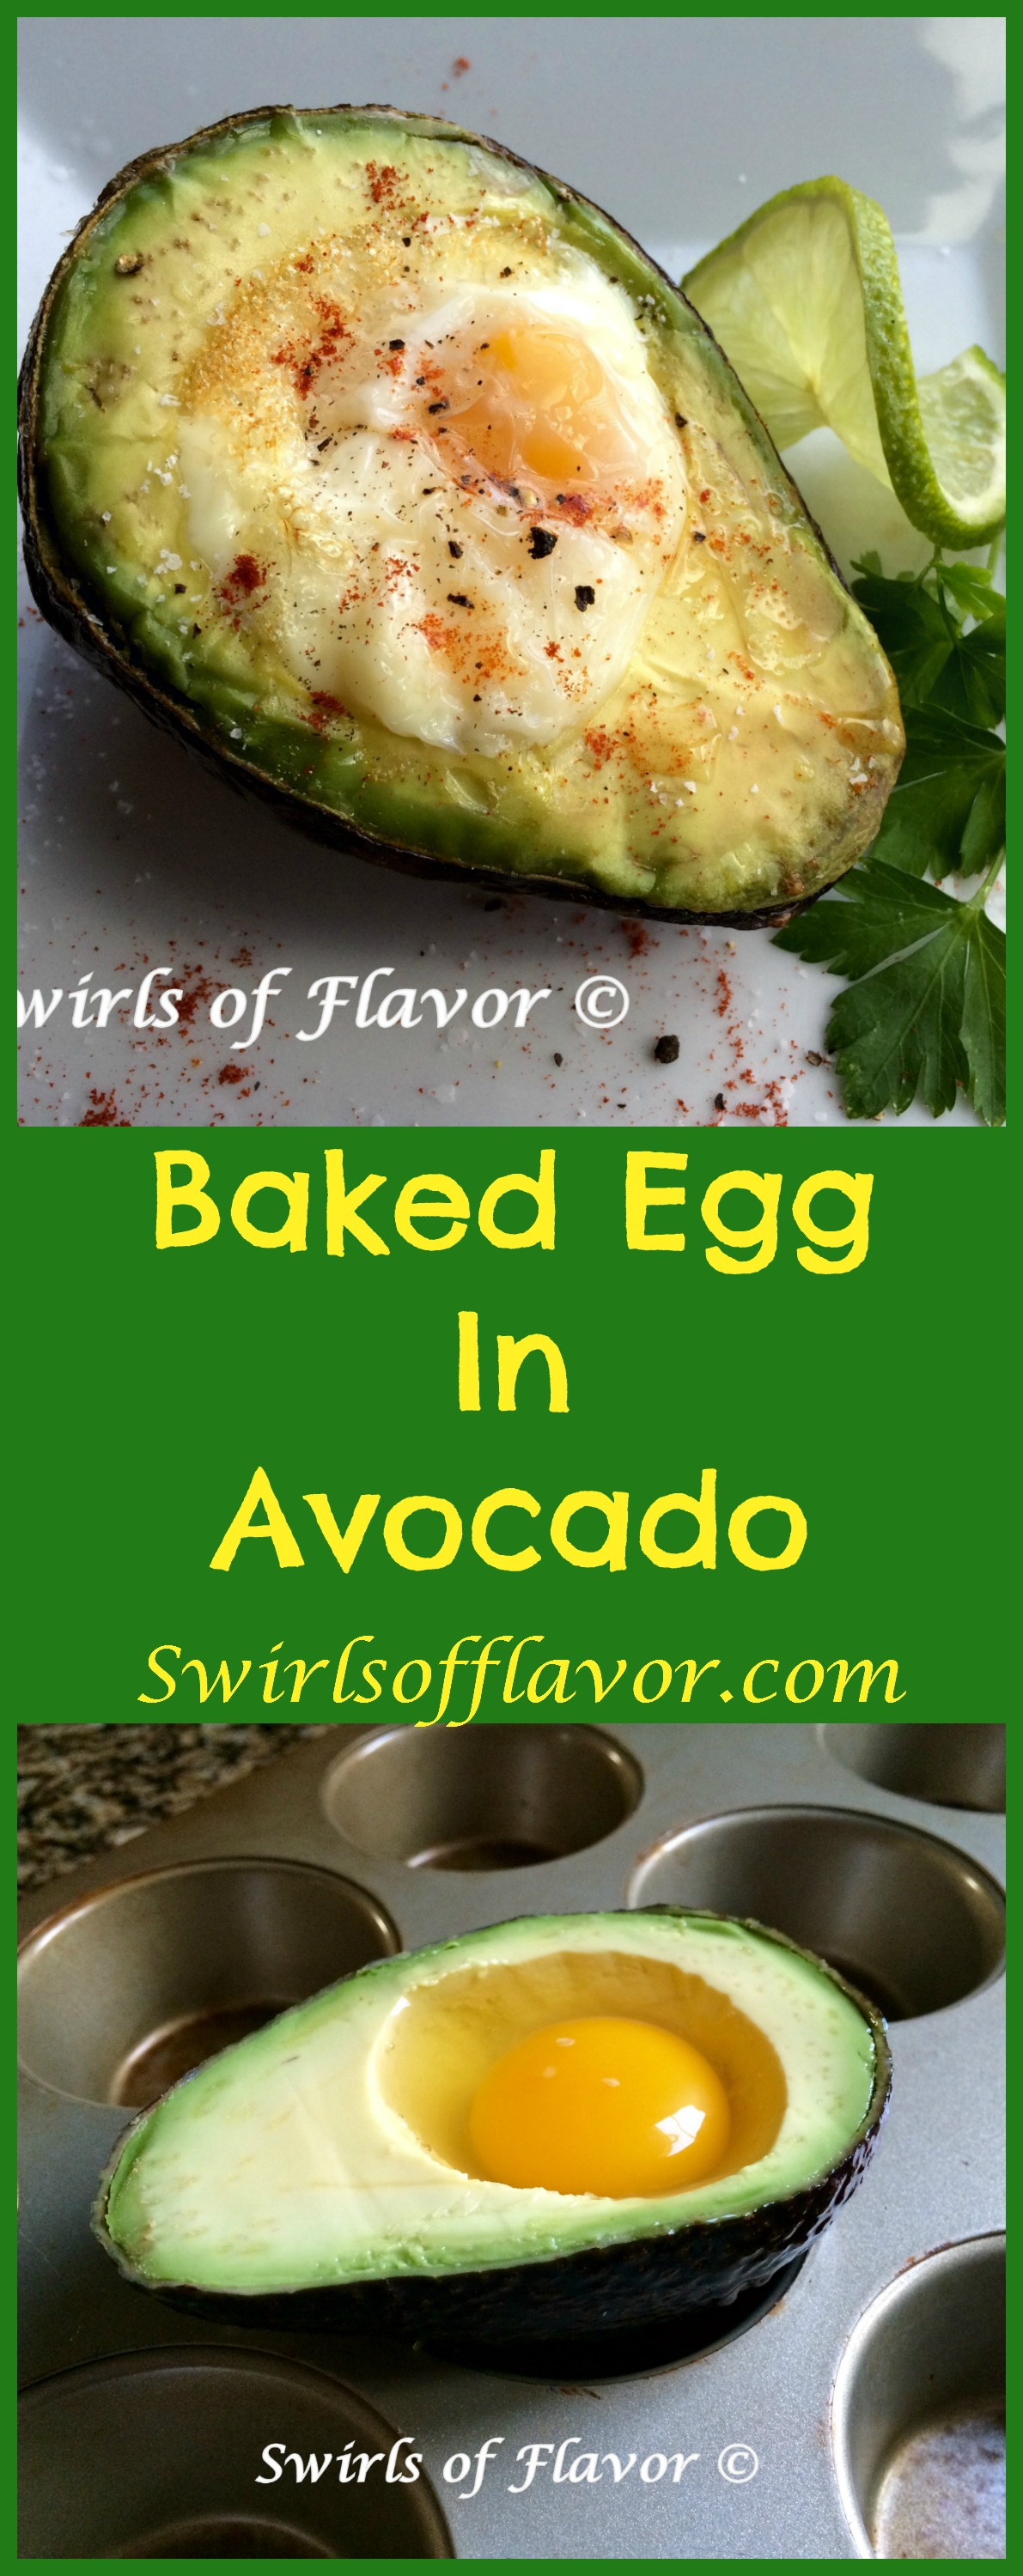 Baked Egg In Avocado combines the perfect protein with a healthy fat creating a powerhouse of nutrition for breakfast! #nationaleggday | easy recipe | breakfast | avocado | egg | baked egg | healthy | #swirlsofflavor